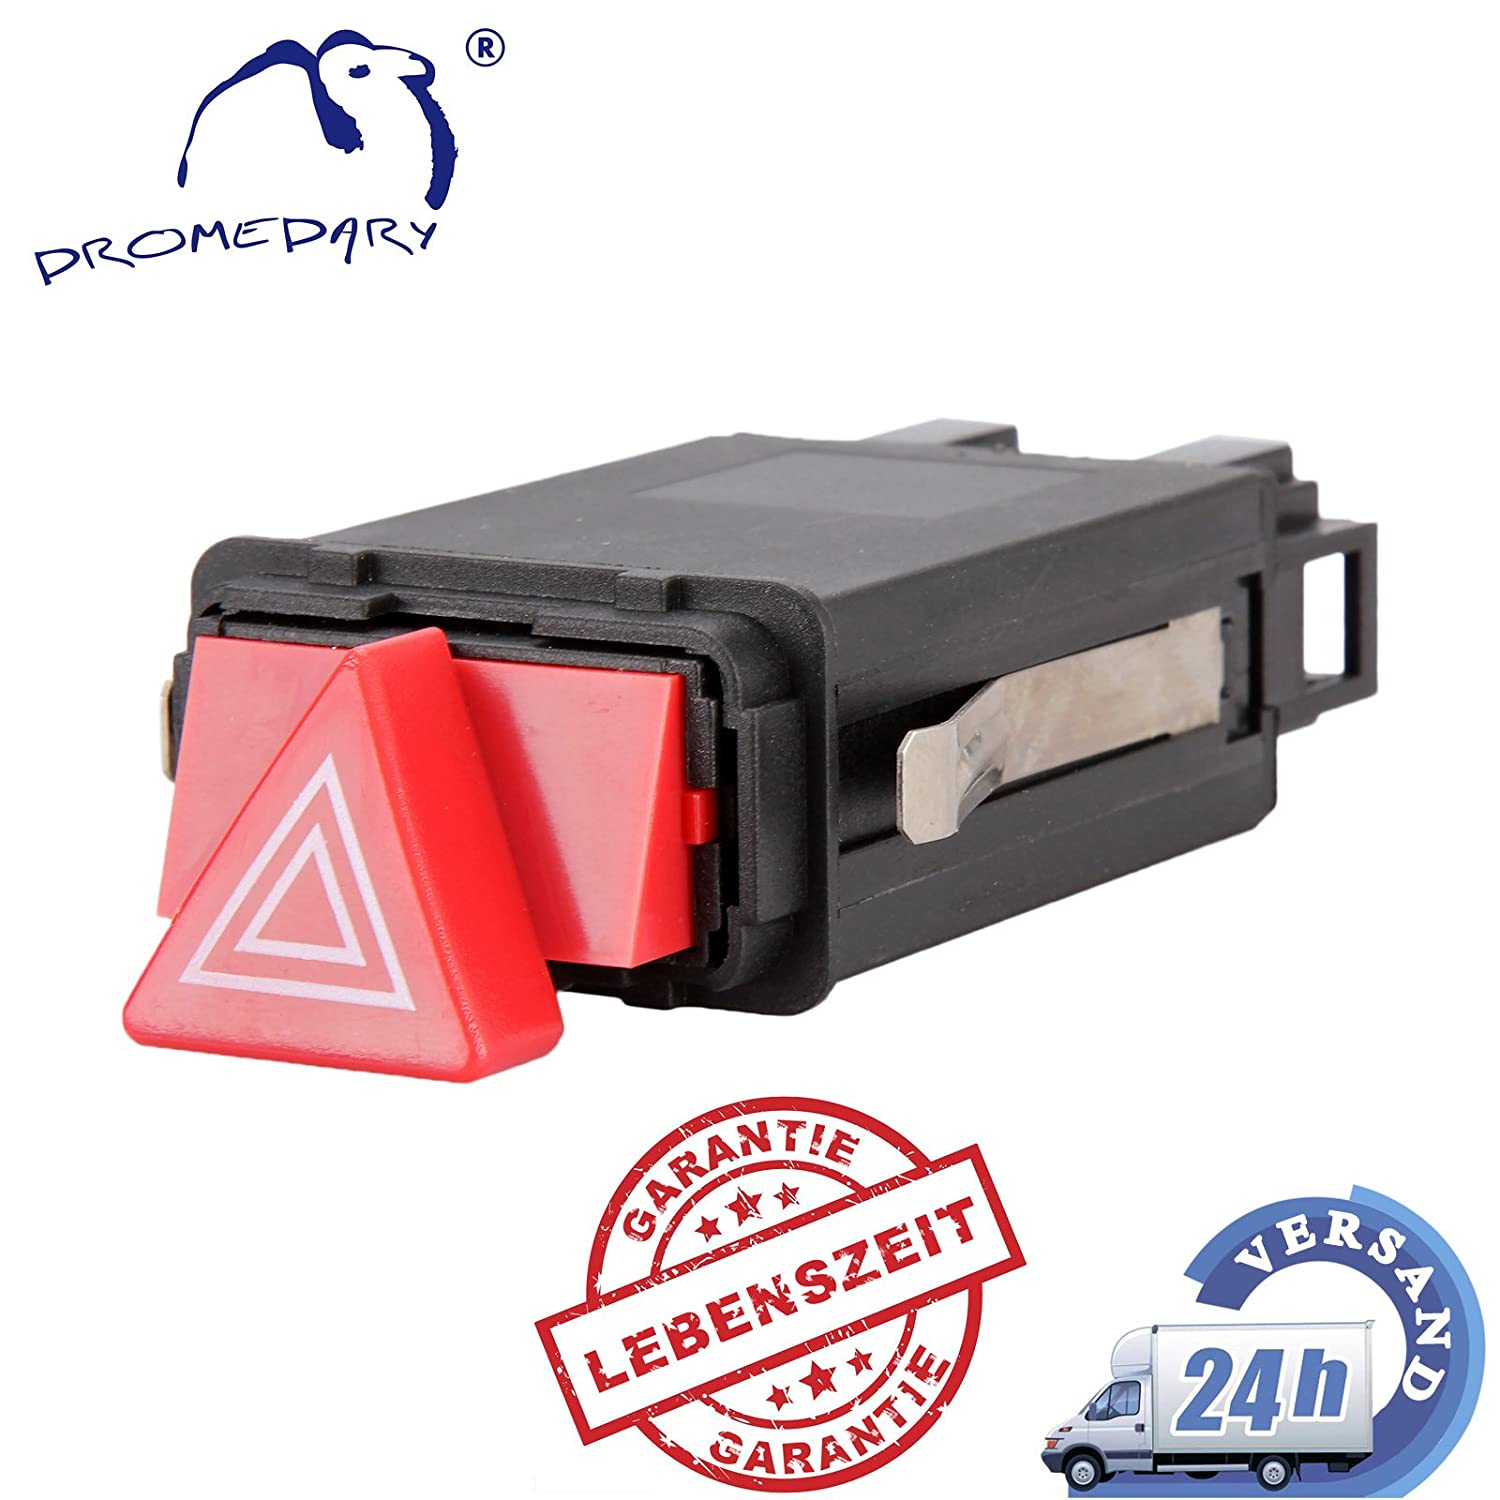 Dromedary Hazard Warning Light Switch Flasher Relay 8D0941509H Dromedary Autoparts